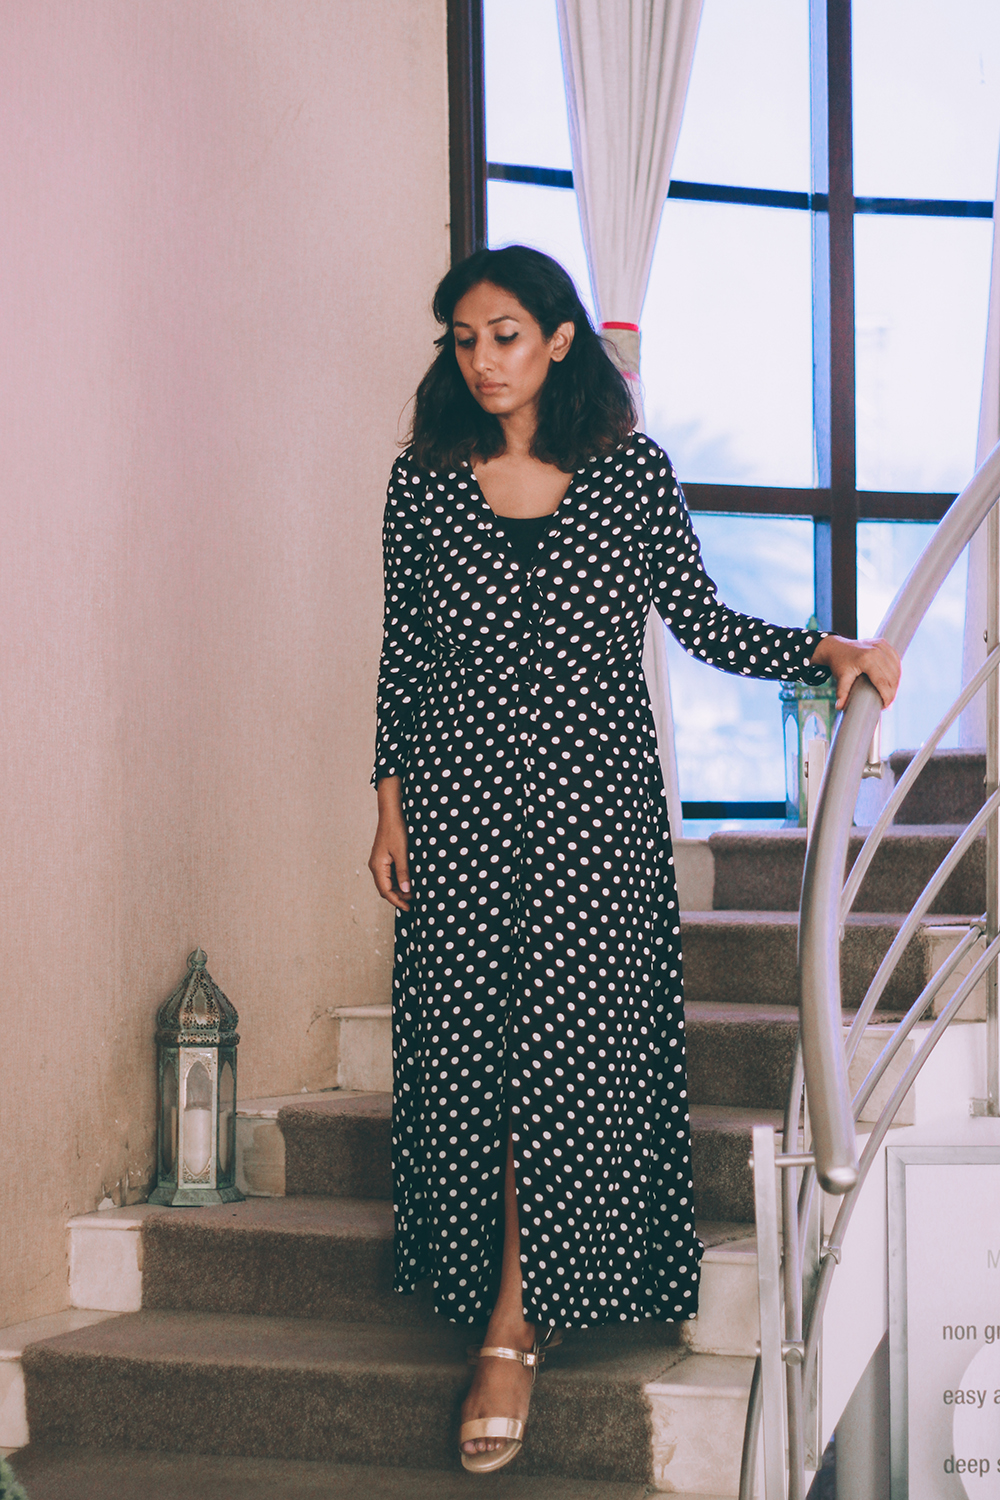 O2 Spa ; Resort wear ; Polka Dots ; Summer ; Maxi ; Lookbook ; indie ; sunset ; Bohemian ; spa outfit ; summer spa ; spa review ; Palm trees ; summer fashion ' Naznin ; Naznin Suhaer ; dusky; model ; indian blogger ; hyderabad fashion bloggers ; hyderabad bloggers ; hyderabad fashion blogger ; I Dress for the Applause